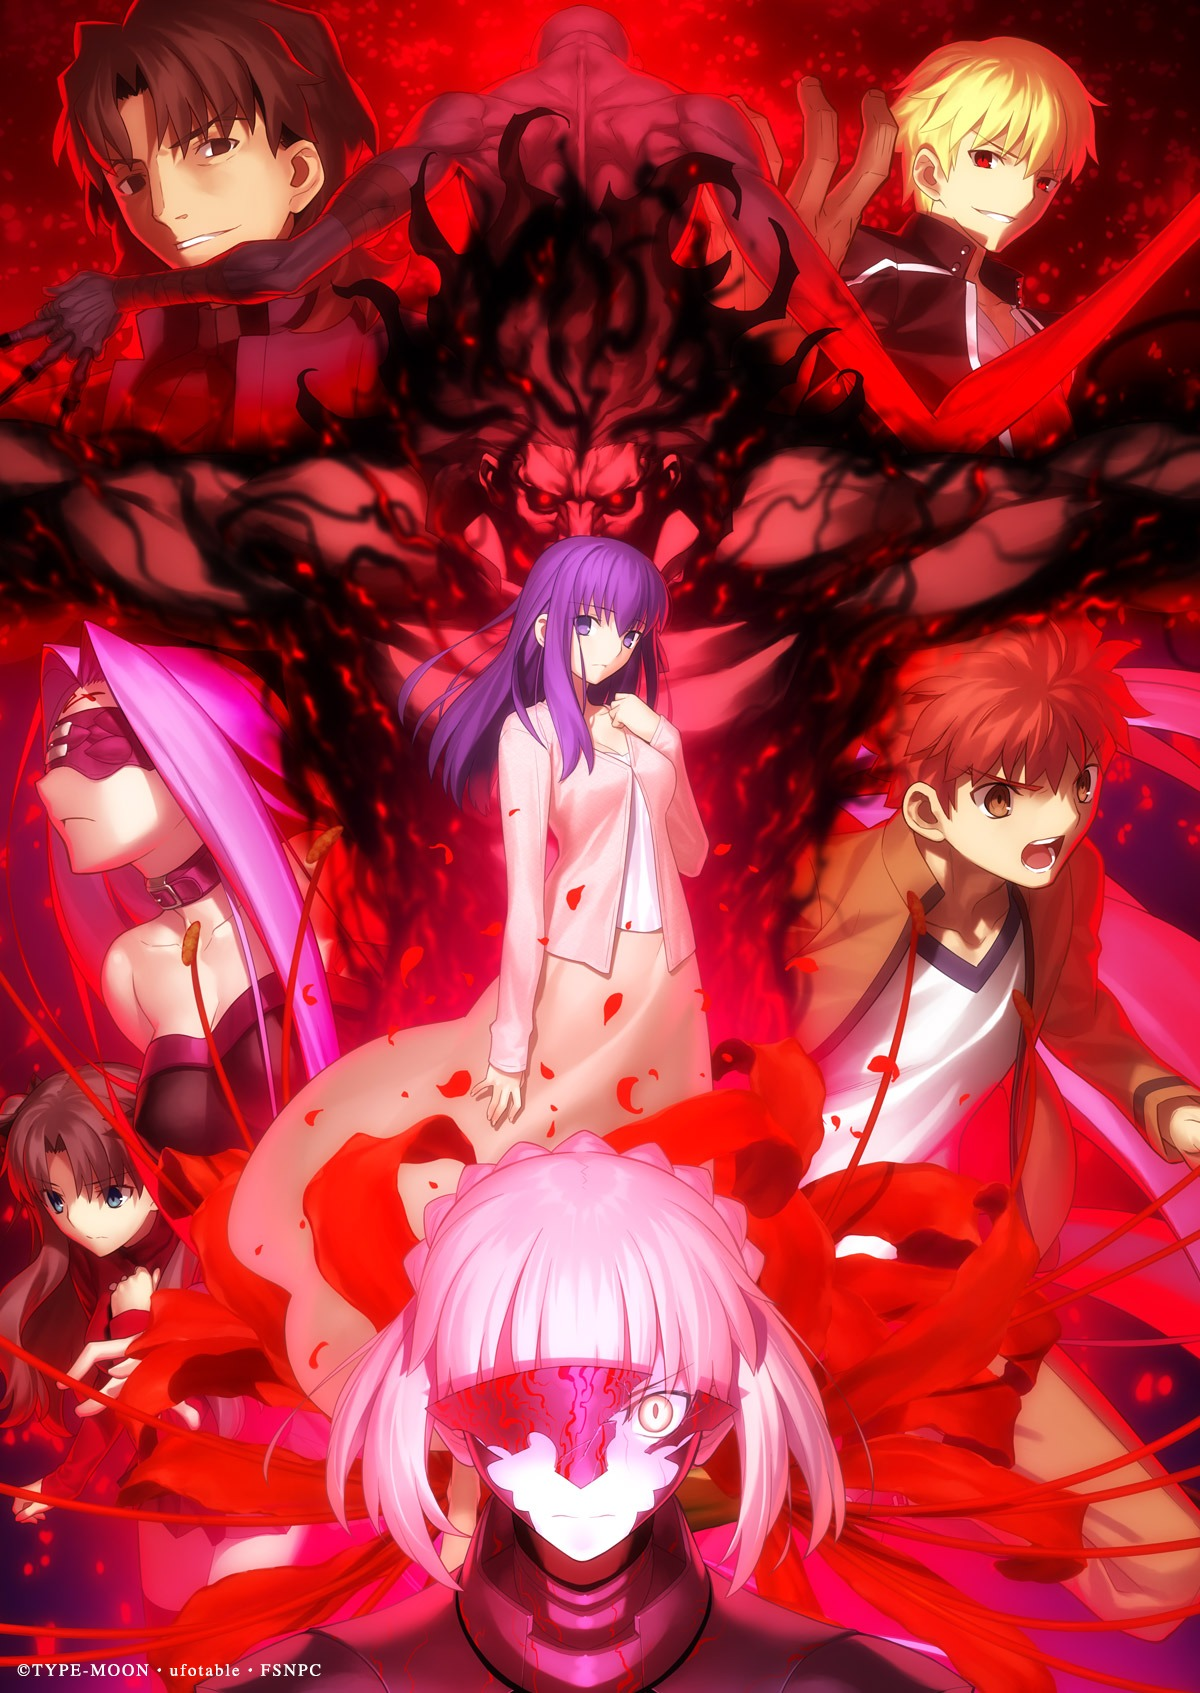 Fate/stay night [ Heaven's Feel ] 第 2章:lost butterfly